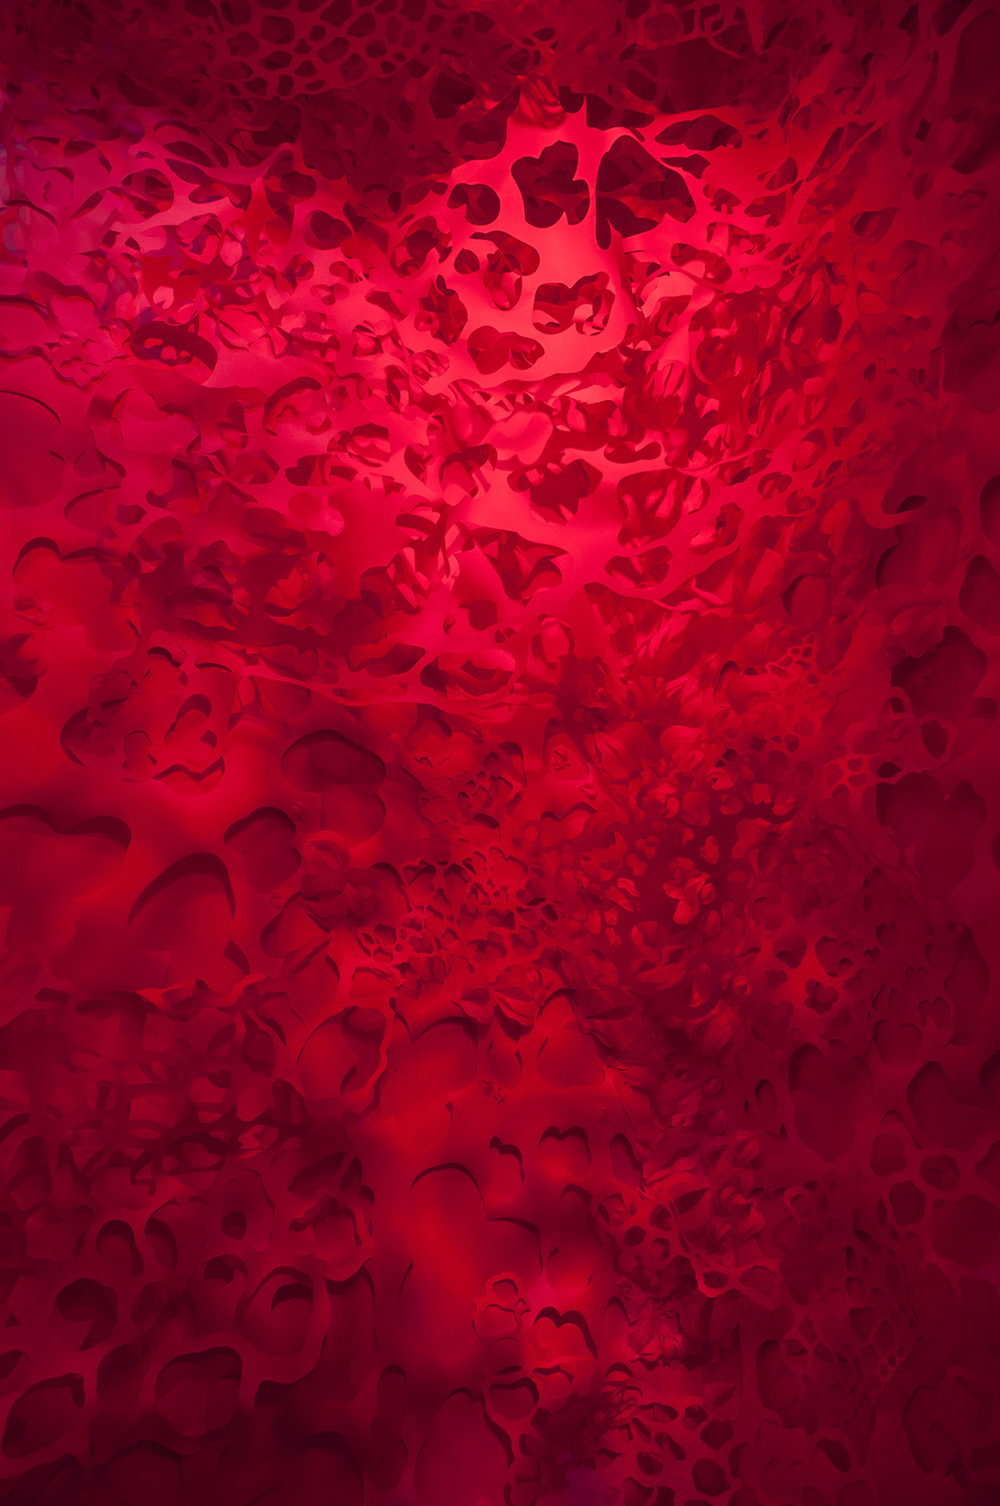 Vascular Caverns: Installed at 707 Gallery  Handcut Paper  2015